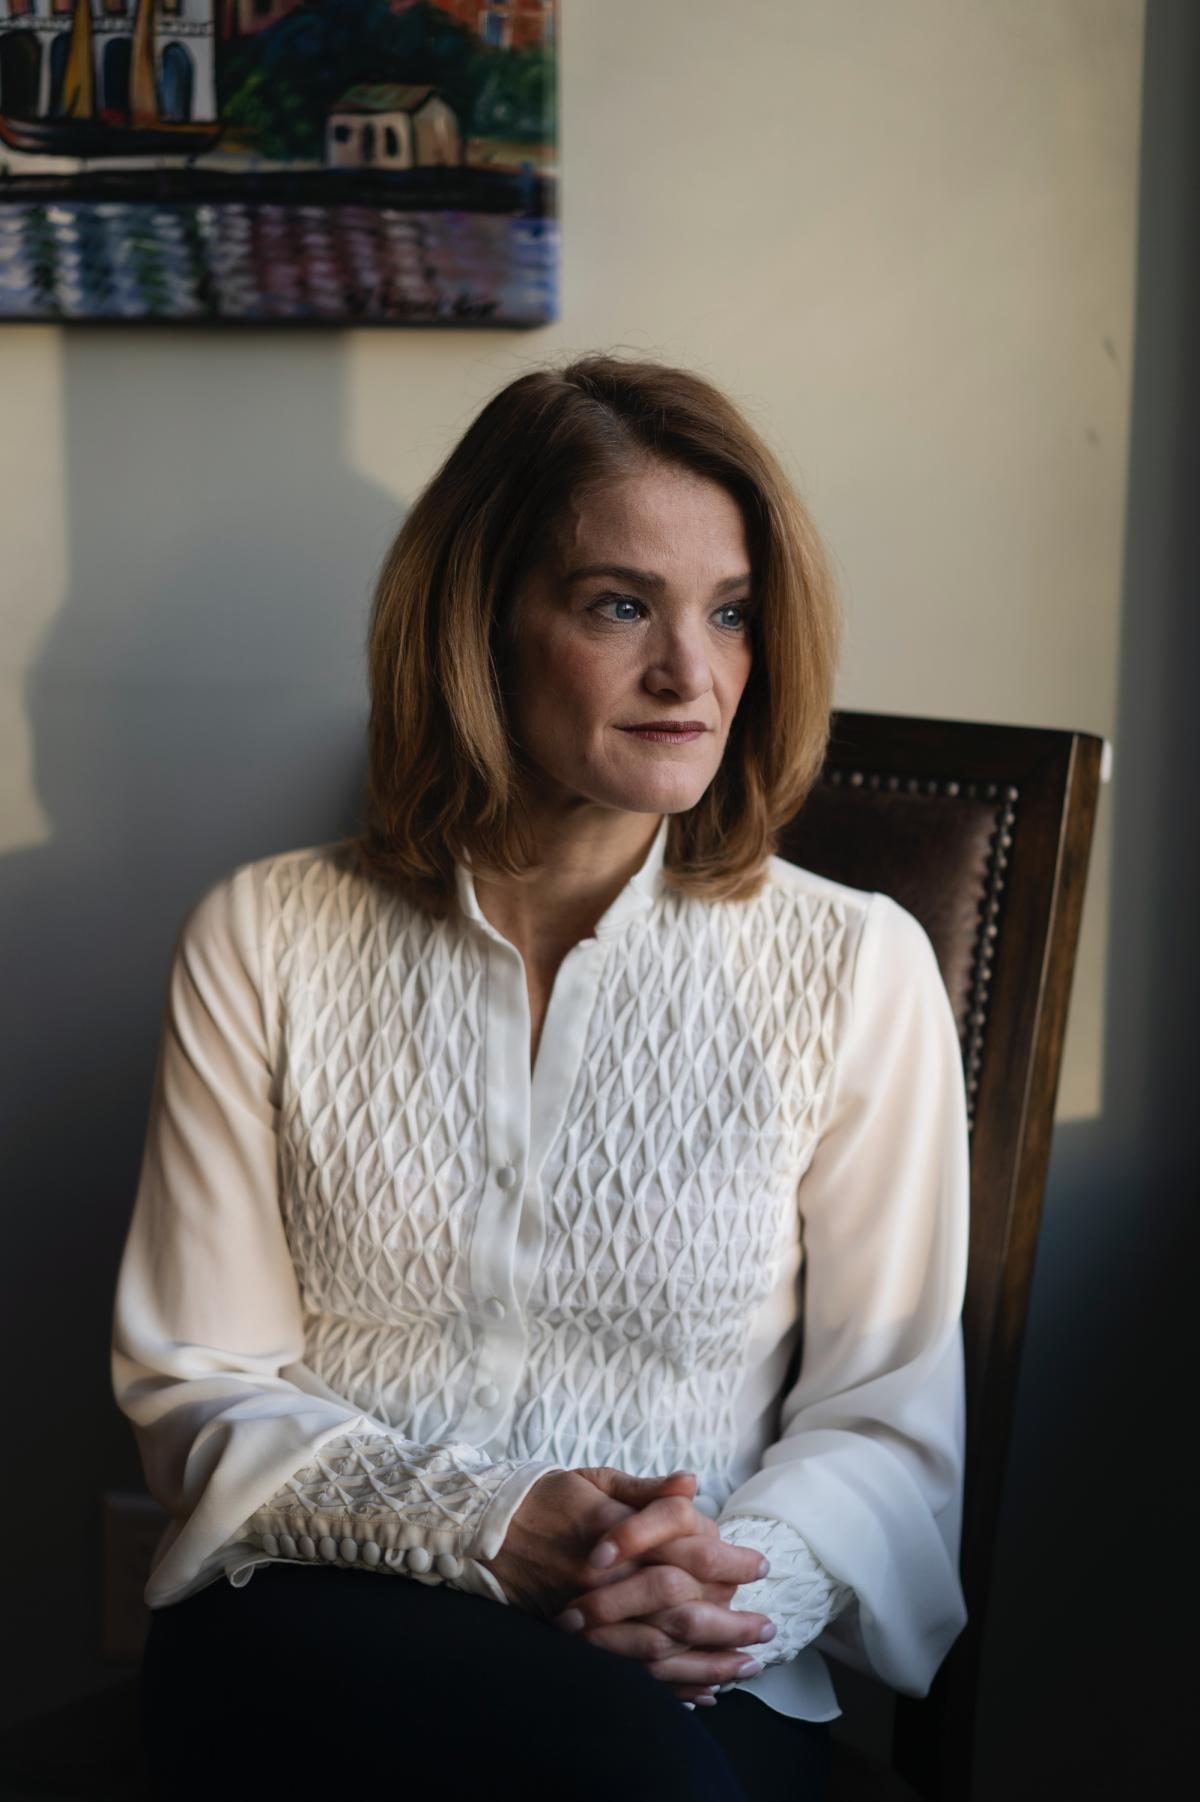 """Nancy Byatt, founding medical director of MCPAP for Moms, says she developed the program after doctors told her they didn't know how to help  pregnant and new moms recover from depression, and that they needed a """"lifeline"""" to support them."""